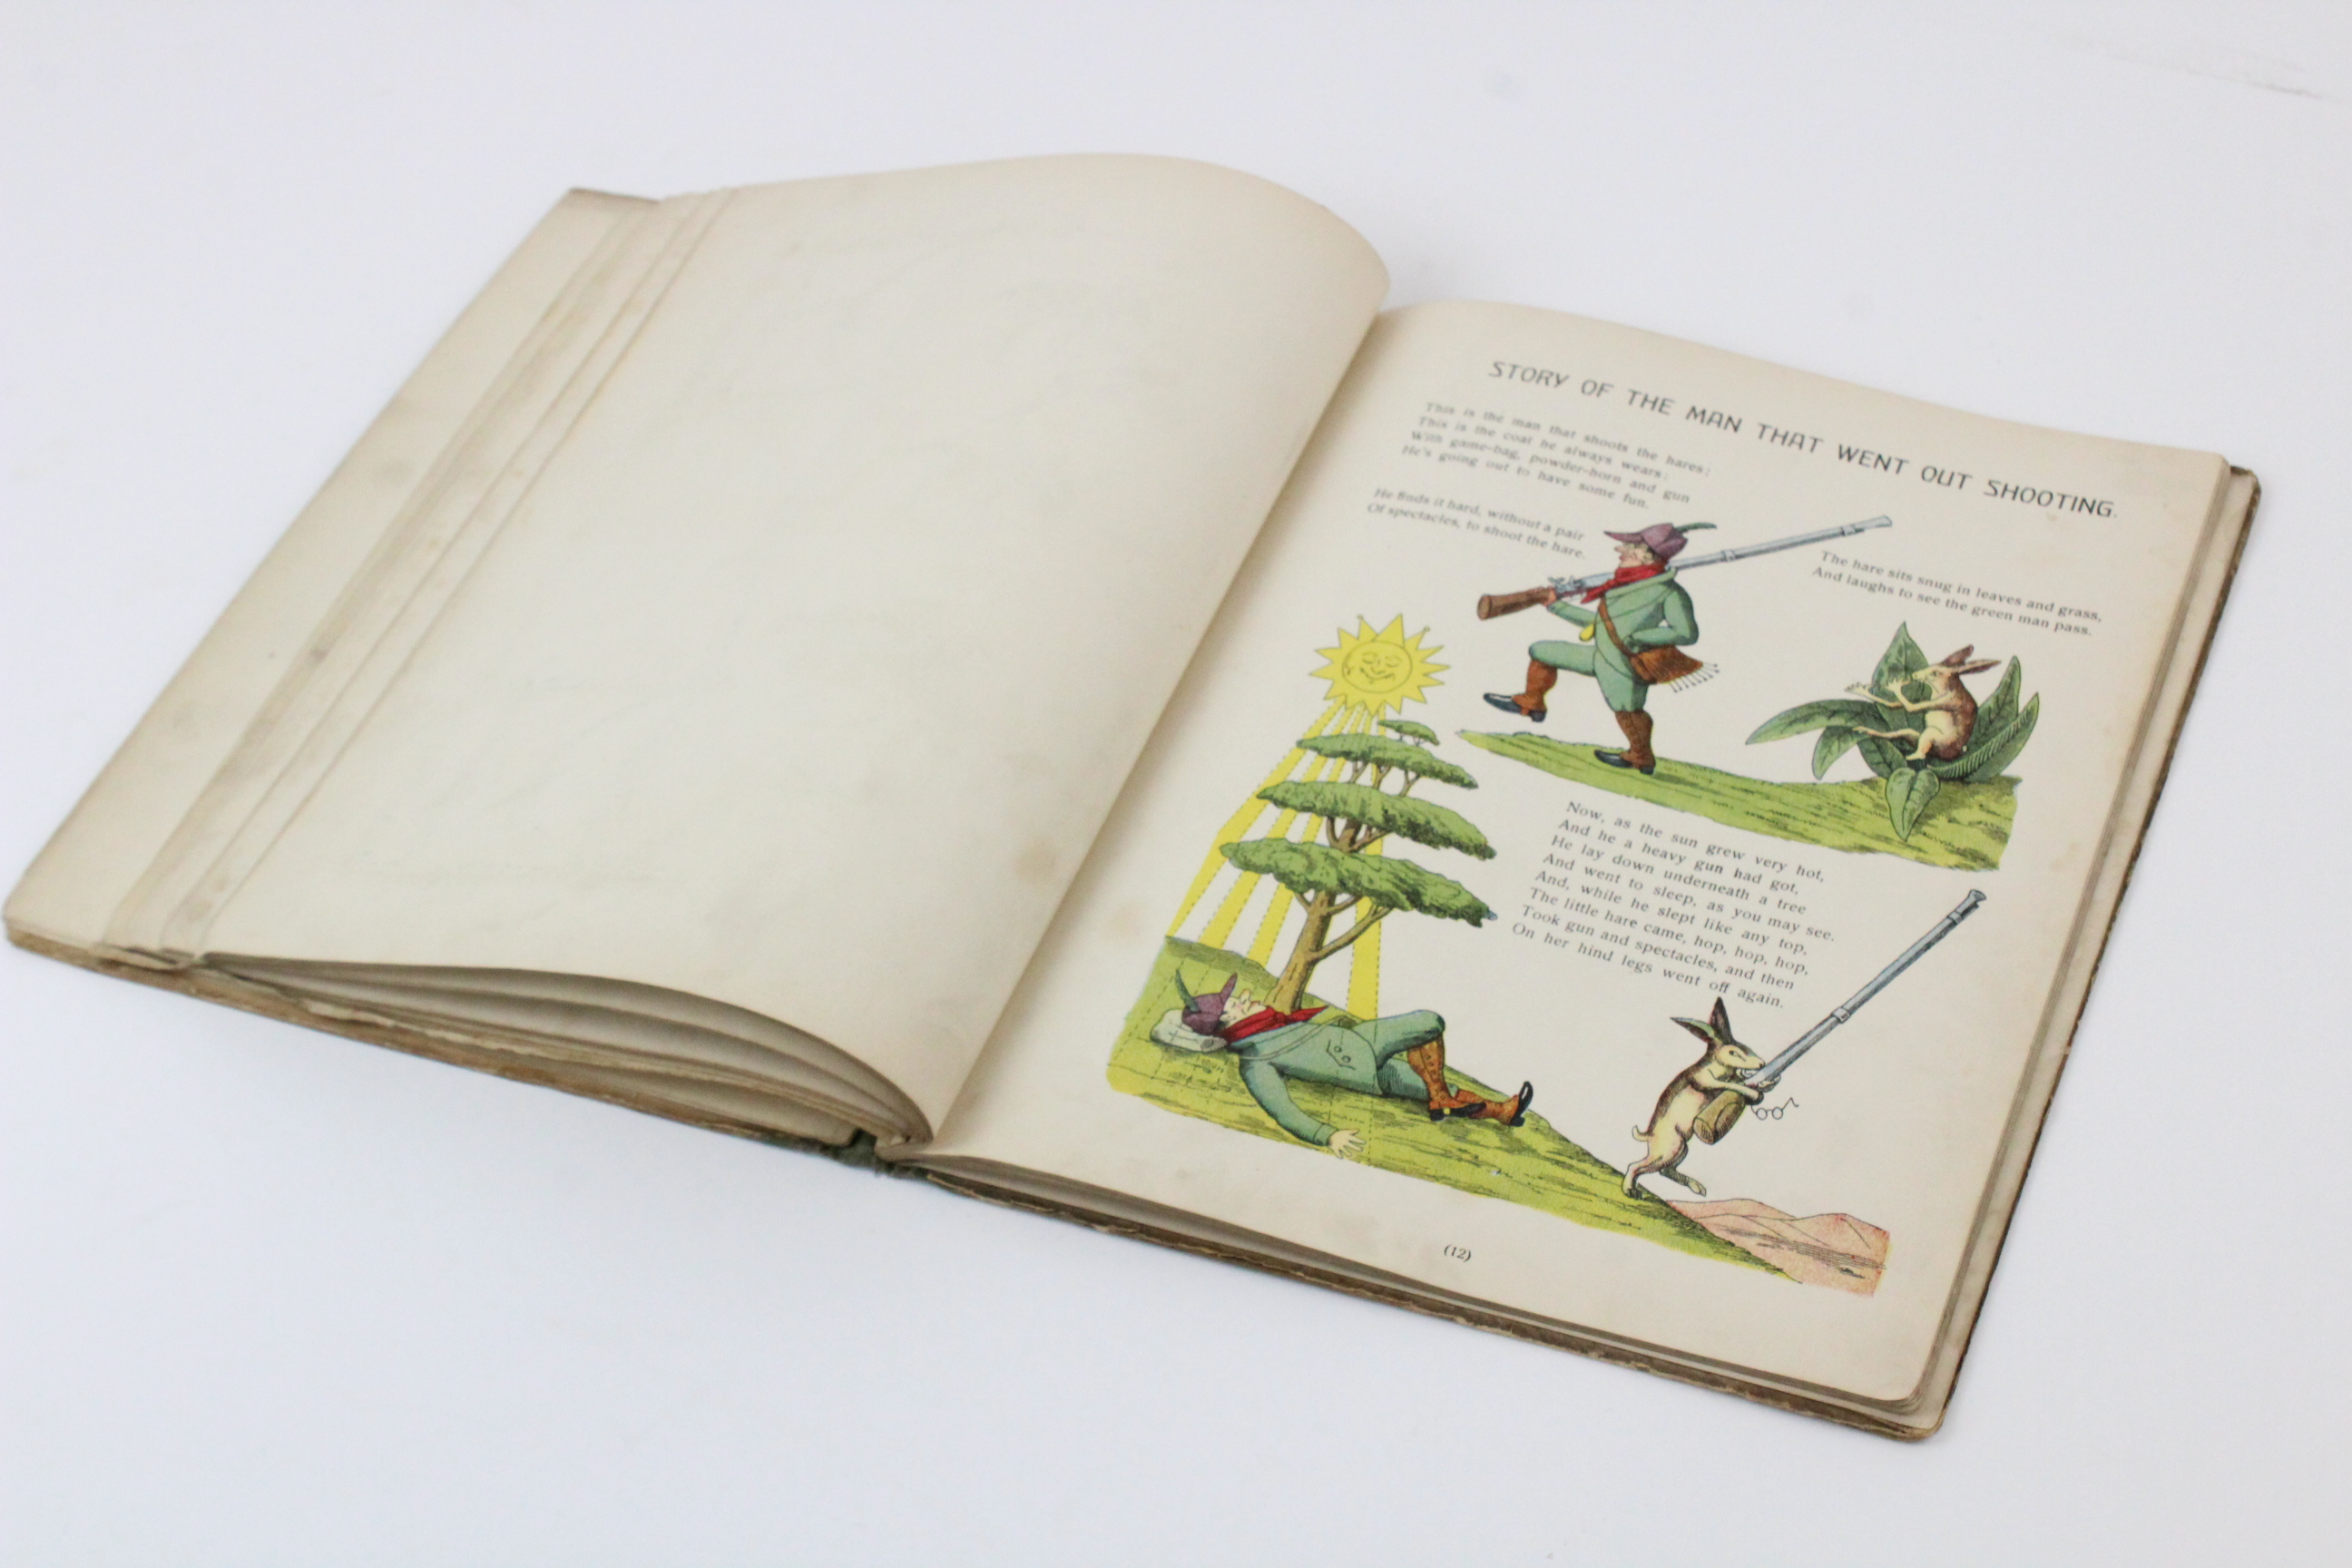 Hazelwood (C) et al, THE PAGEANT, 1897 edition, illustrated red boards, illustrated endpapers, - Image 10 of 16